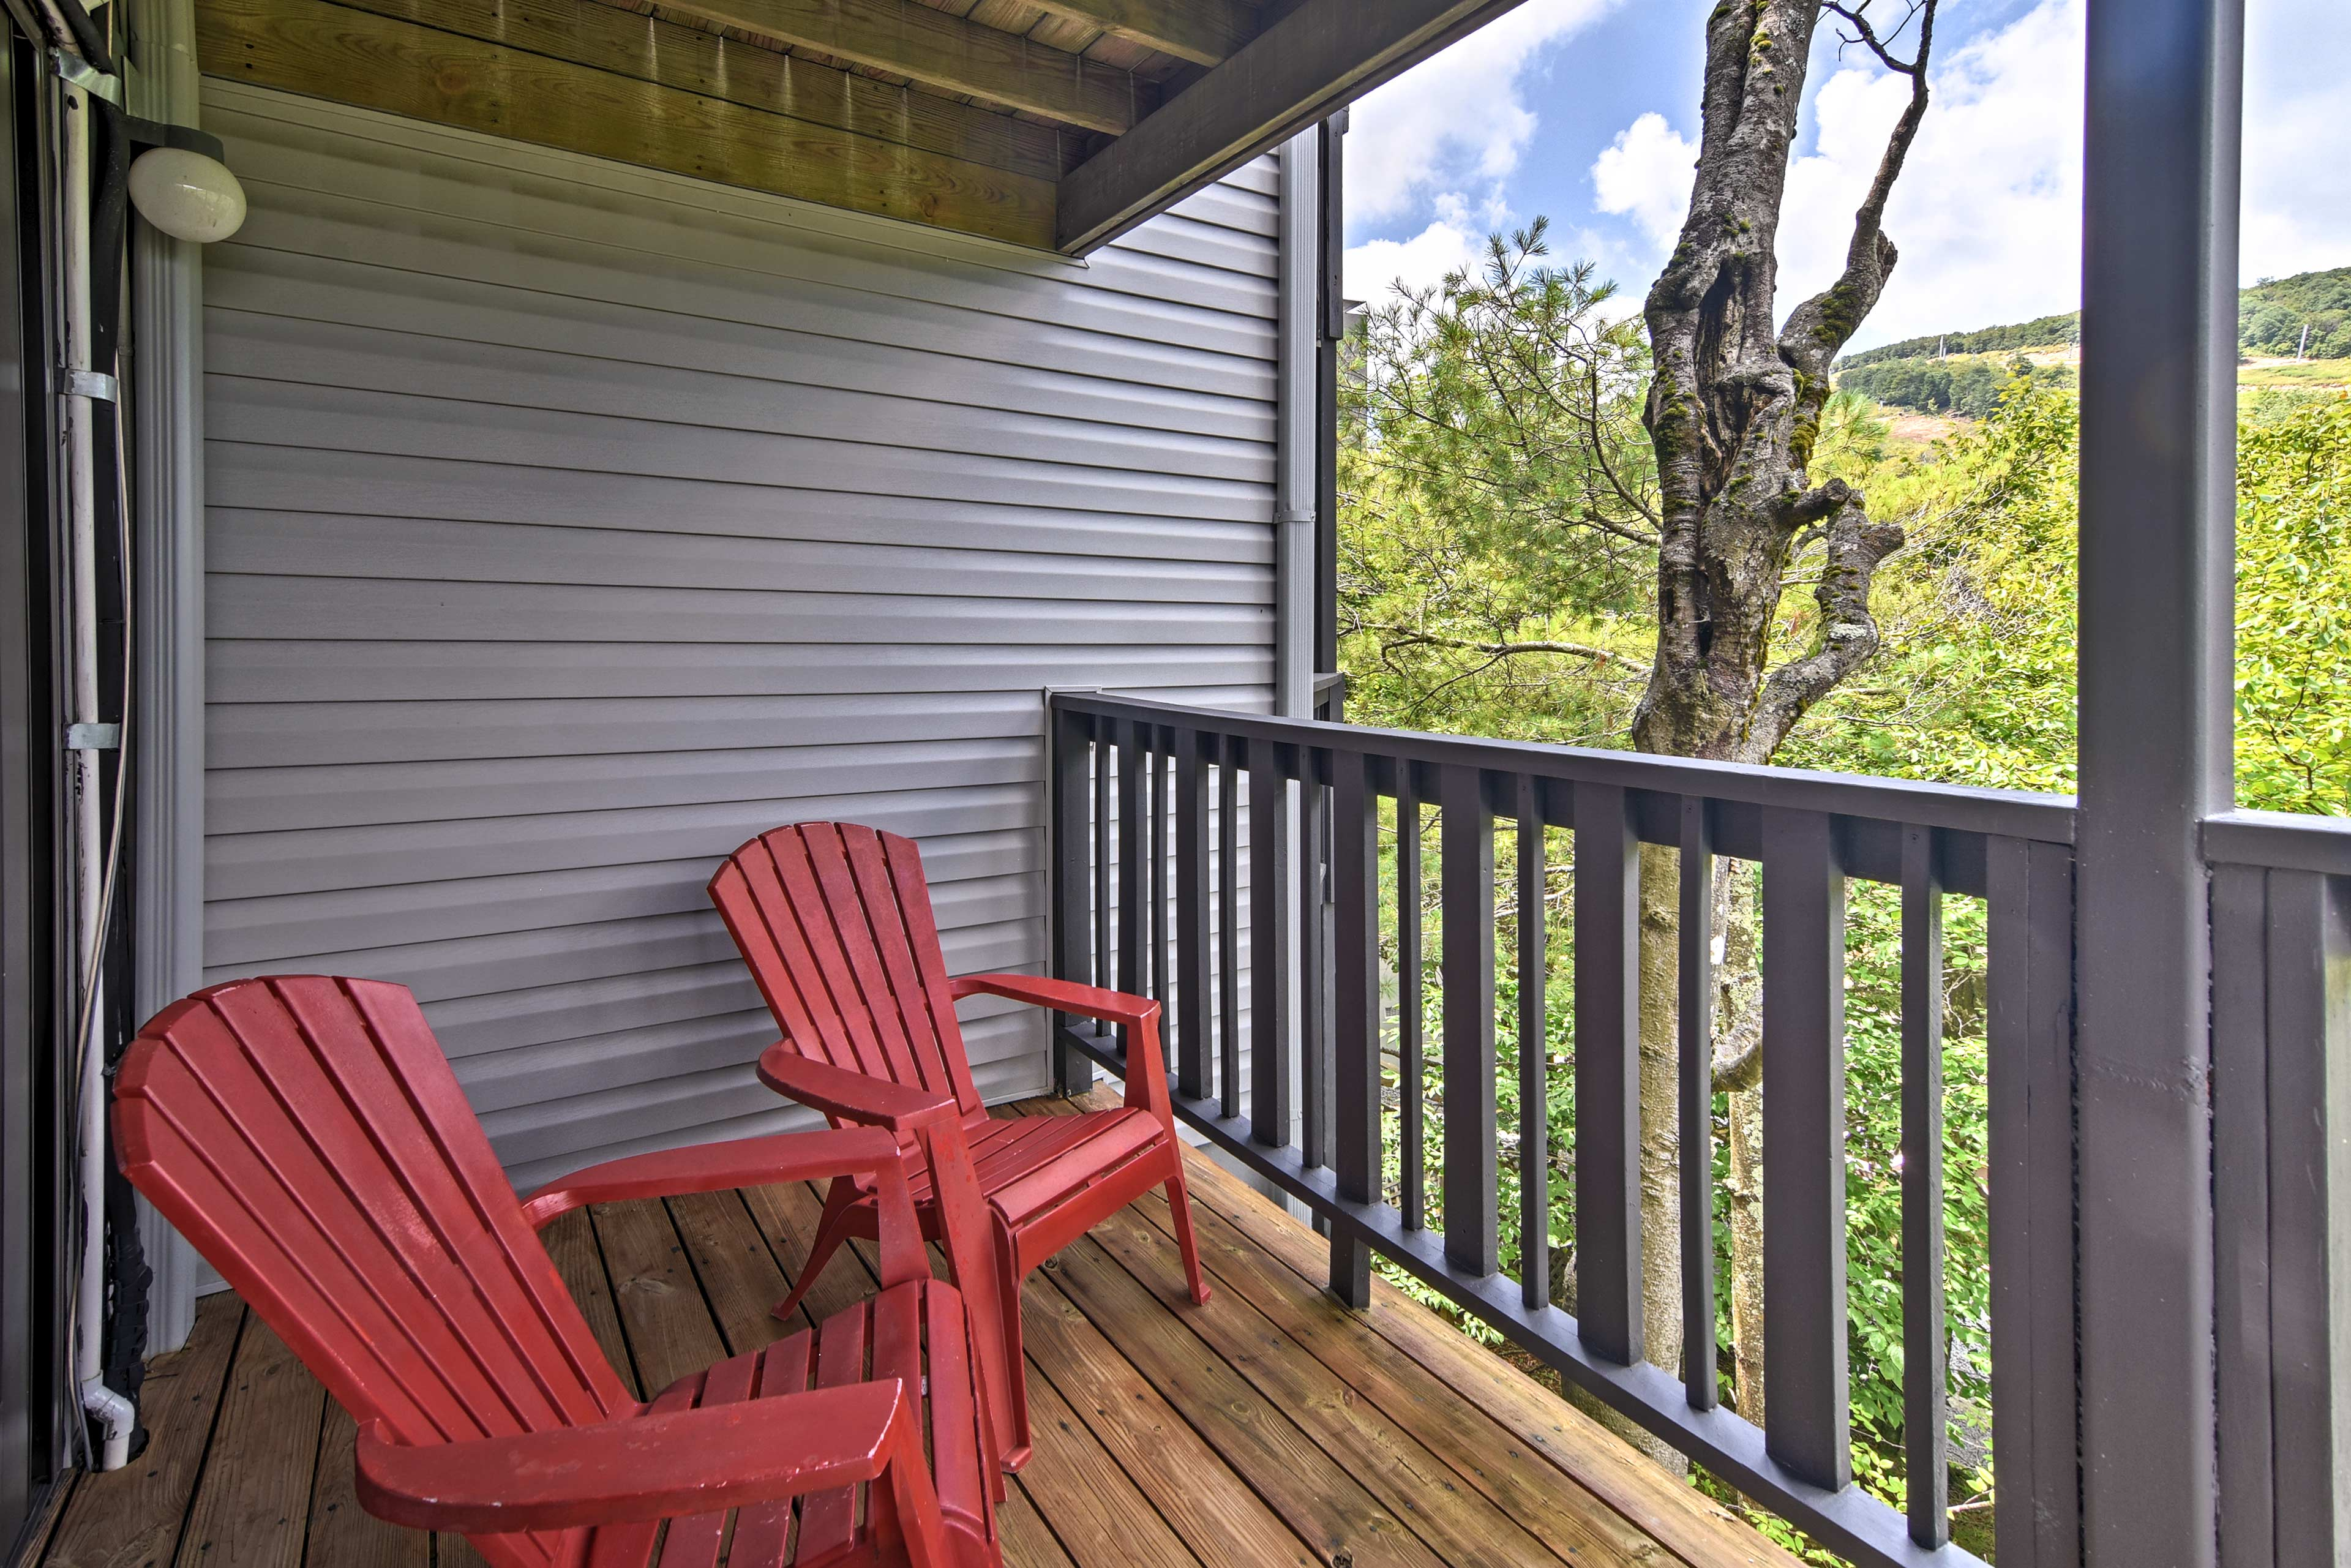 You'll love the scenic views of the forest and mountain.